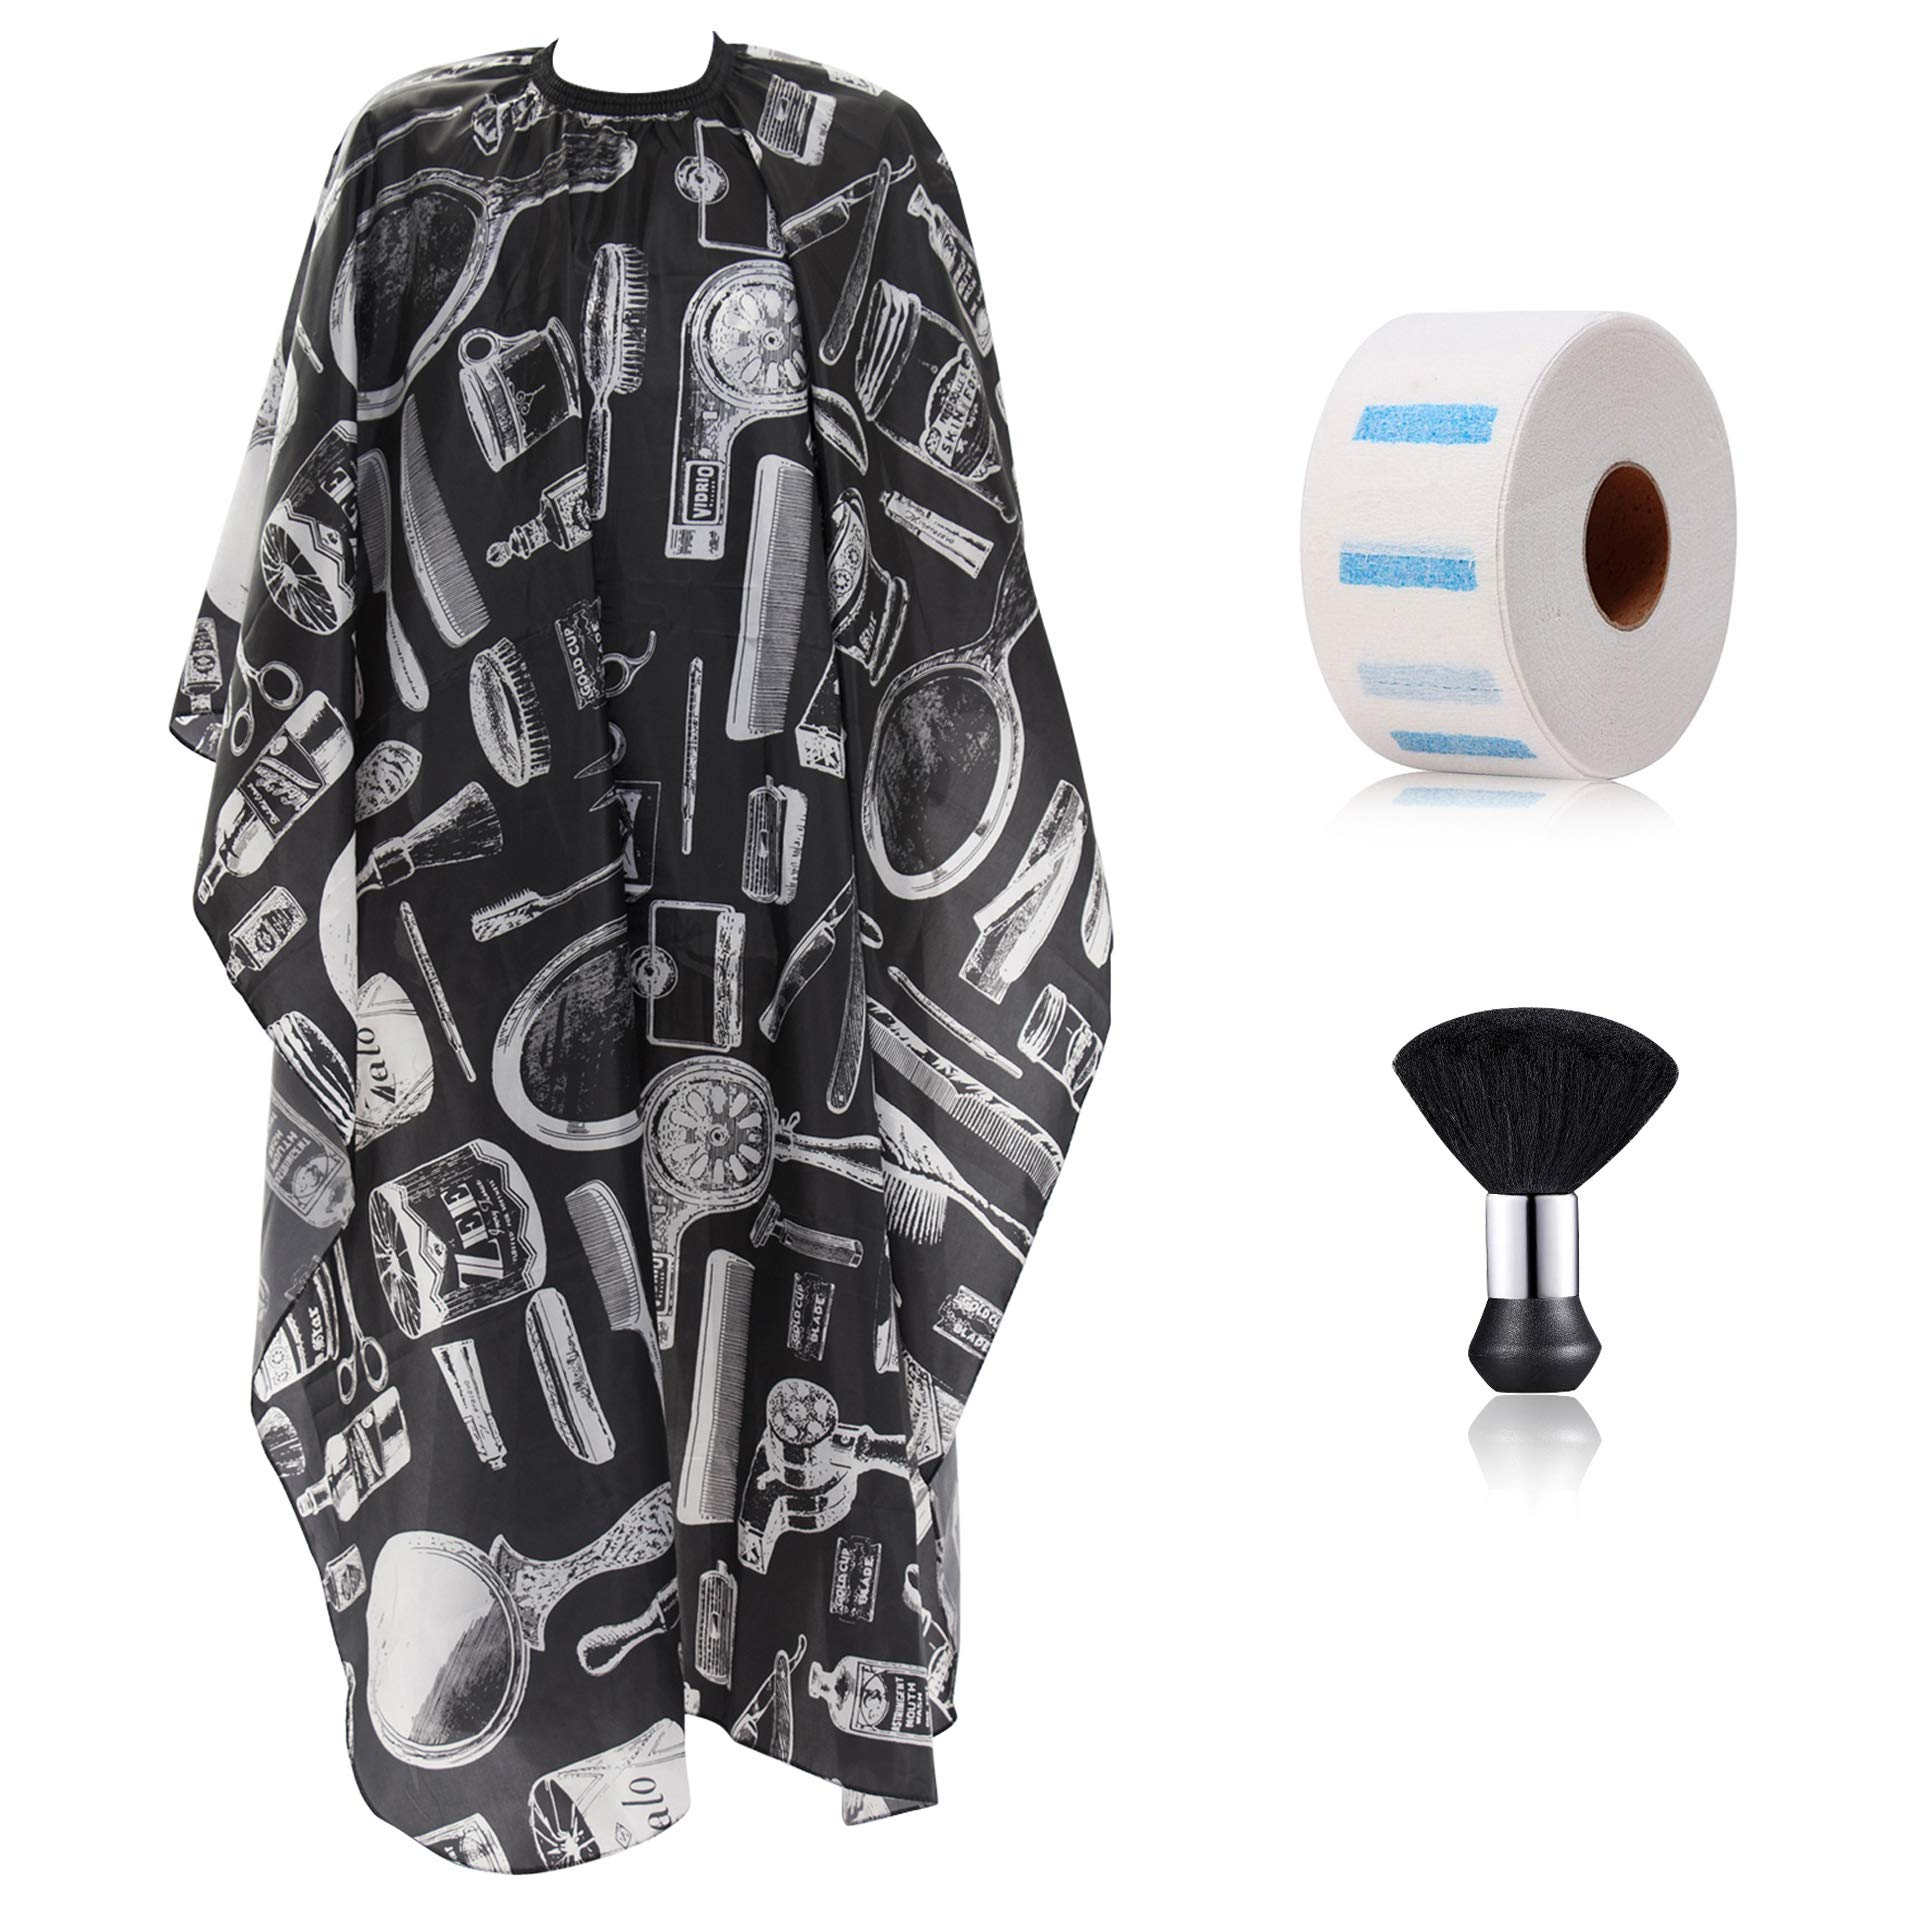 Bircen Barber Cape,Hair Cutting Cape for Salon and Home Use,Comes with Neck Duster Brush and Neck Strips Adjustable Buckle Design -55x63 Inch